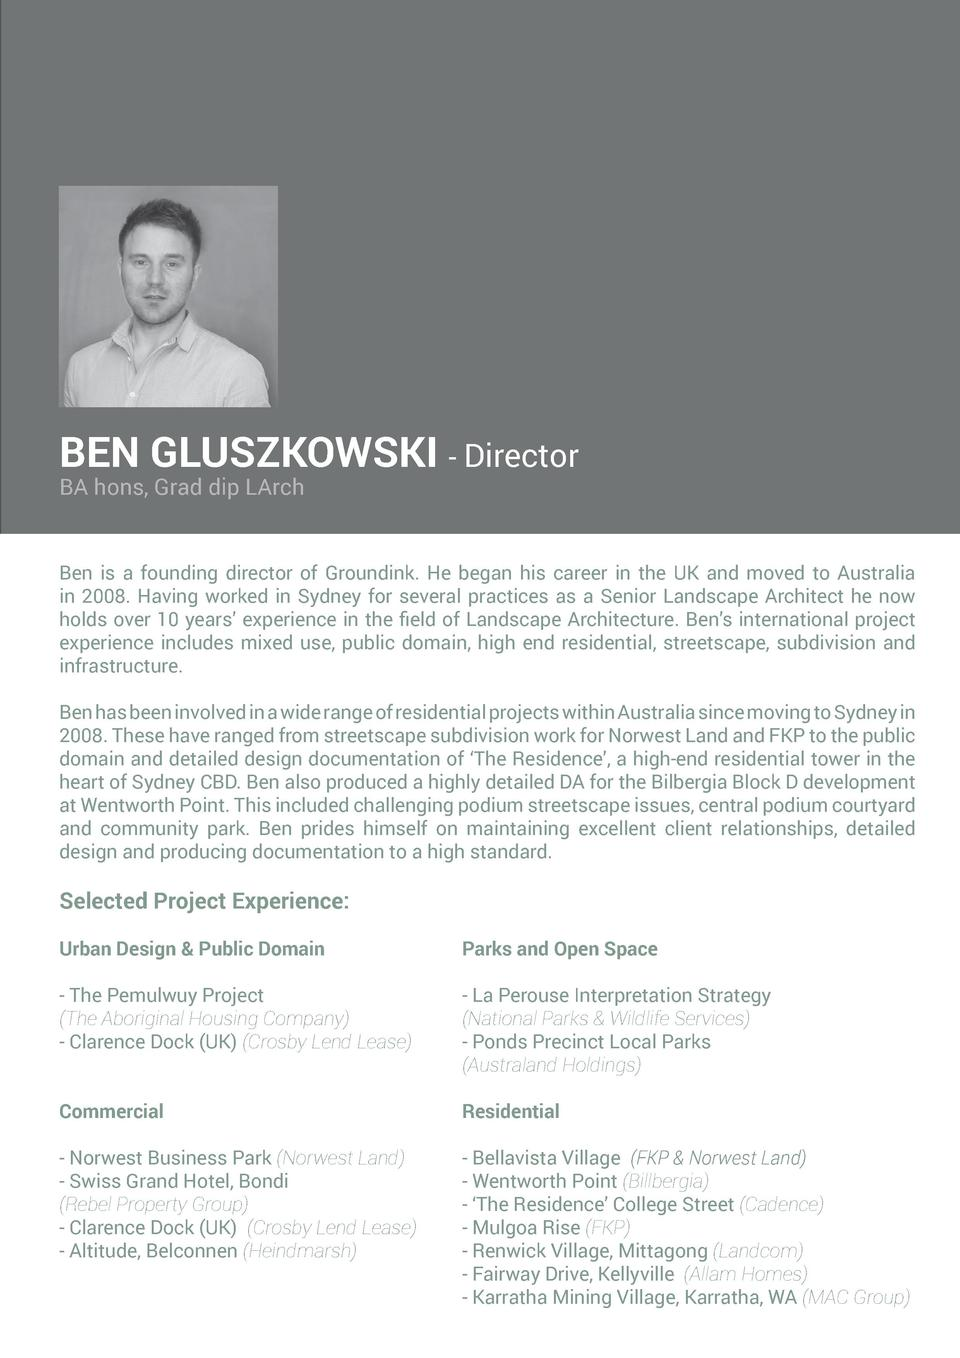 al  BEN GLUSZKOWSKI - Director  knowledge base, built on local and winning international design practice, Rob successfully...